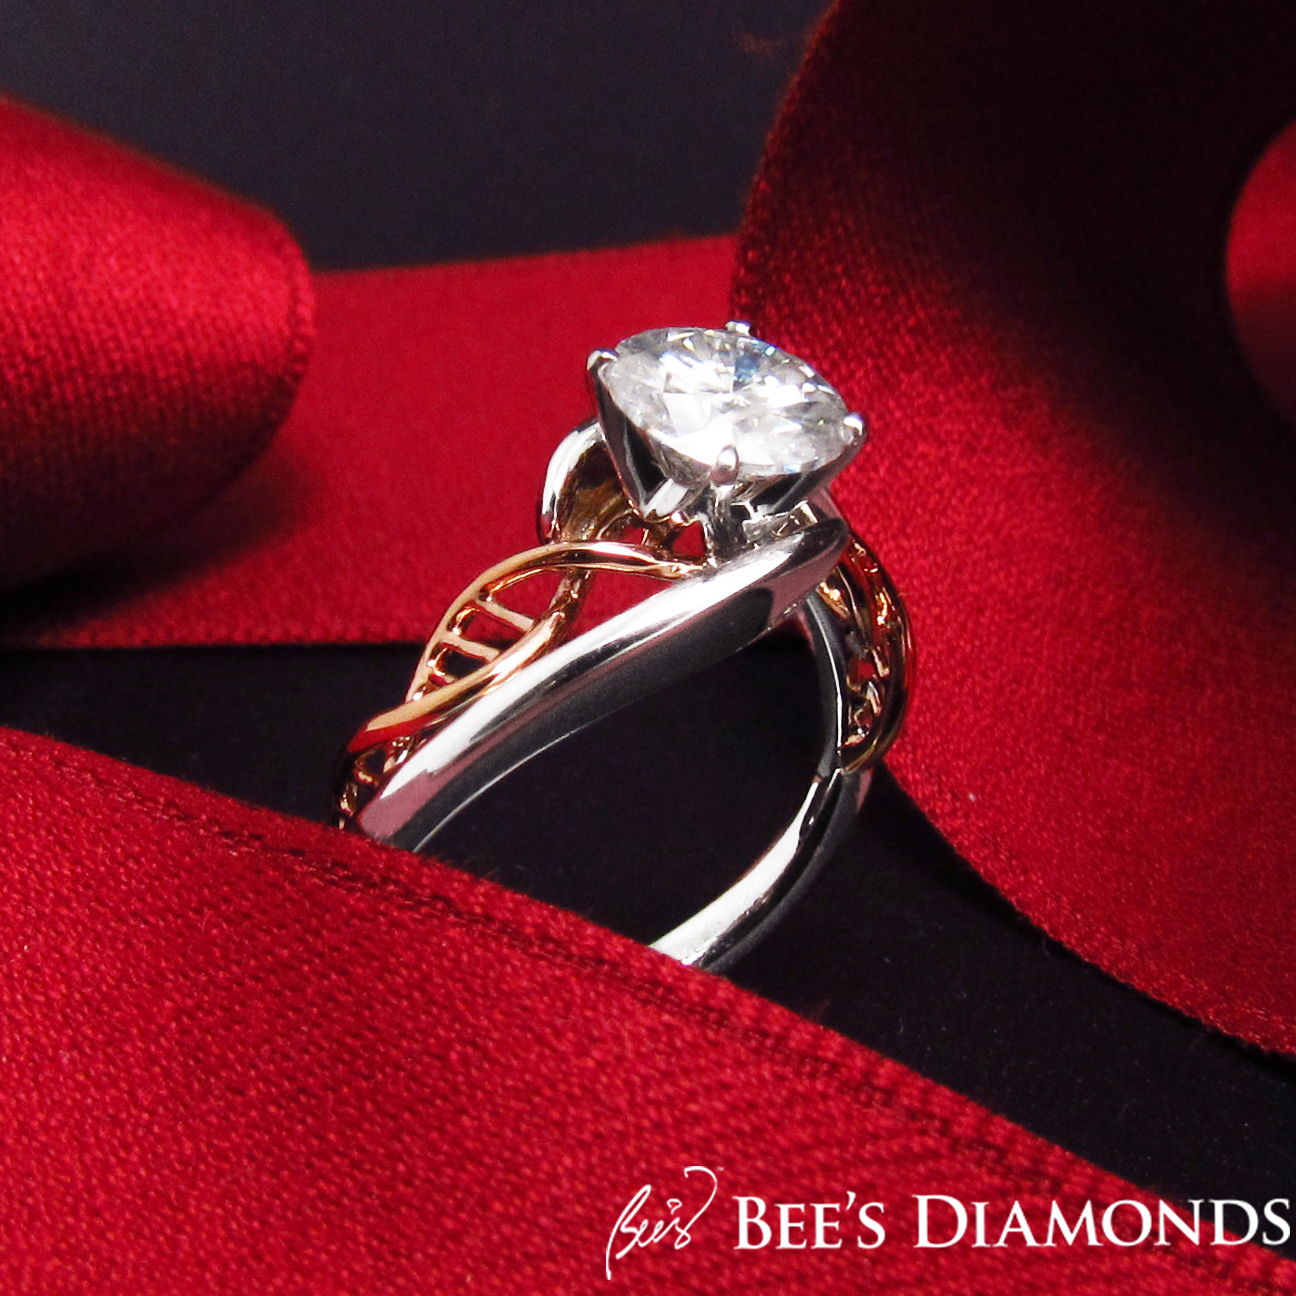 A solitaire diamond ring with DNA helix design | Bee's Diamonds